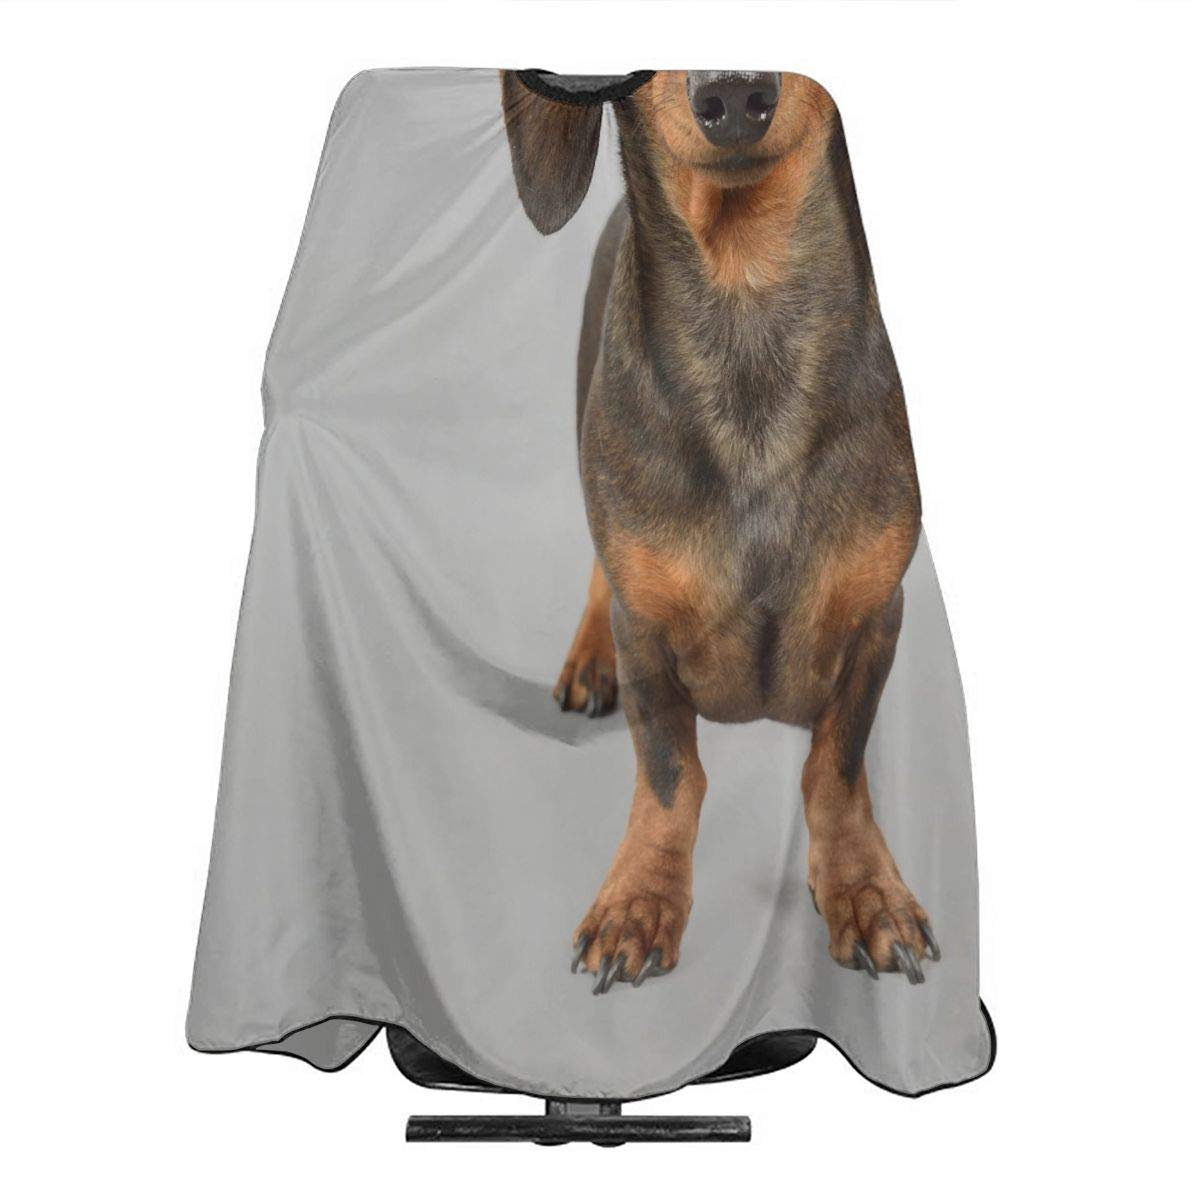 Barber Cape Cute Dachshund Puppy Fun Dog Professional Salon Hair Cutting Capes For Hair Stylist Waterproof Haircut Hairdressing Clients Hairstylist Capes For Adult Men Women Kids